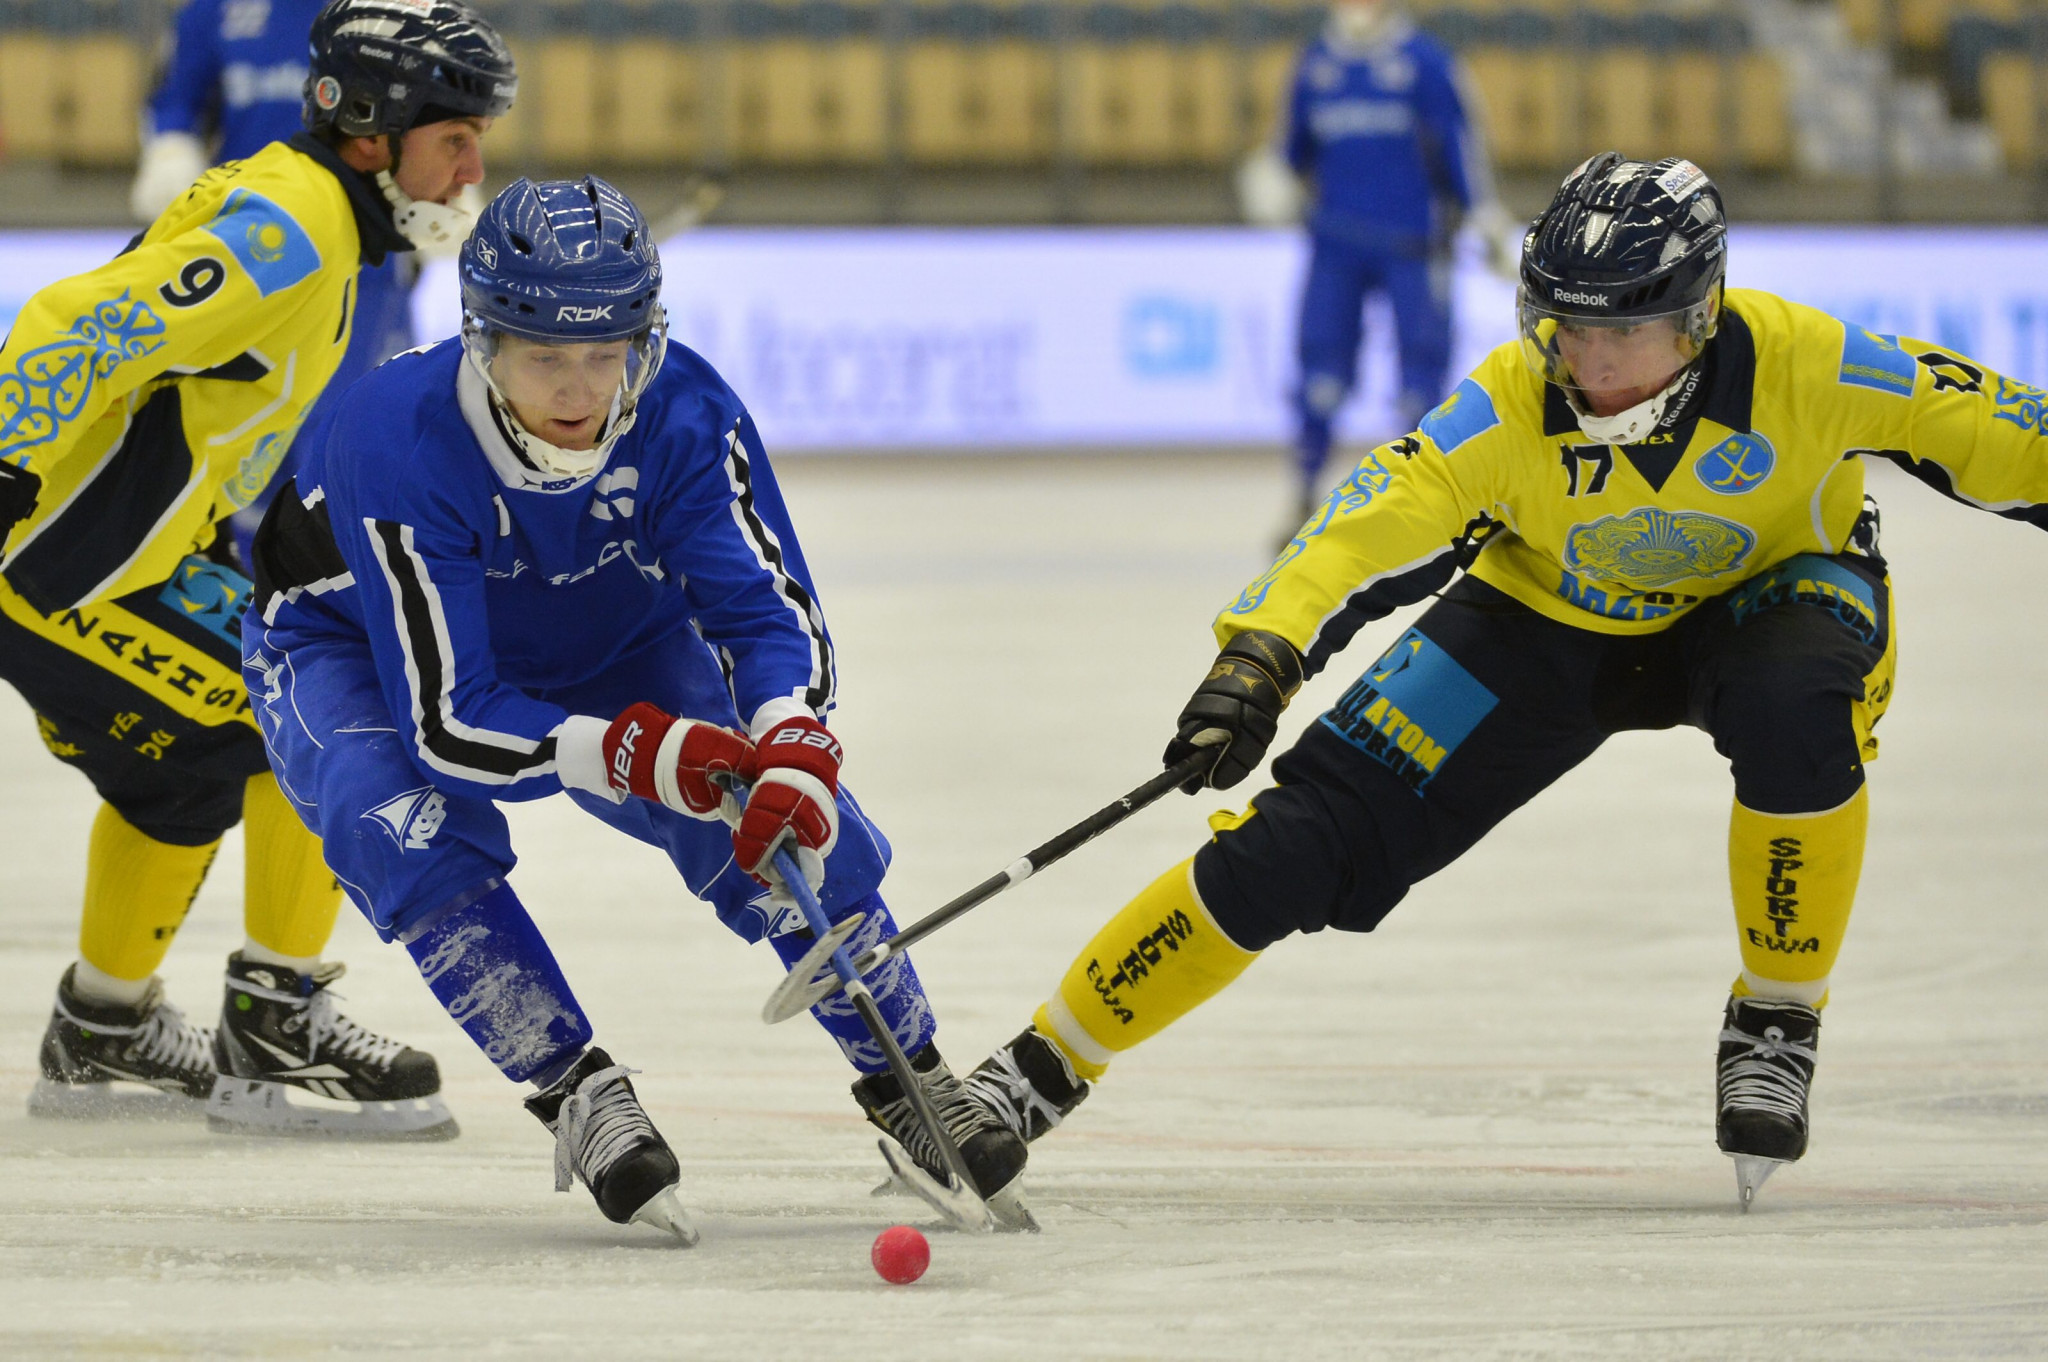 Semi-final line-ups decided at Men's Bandy World Championship